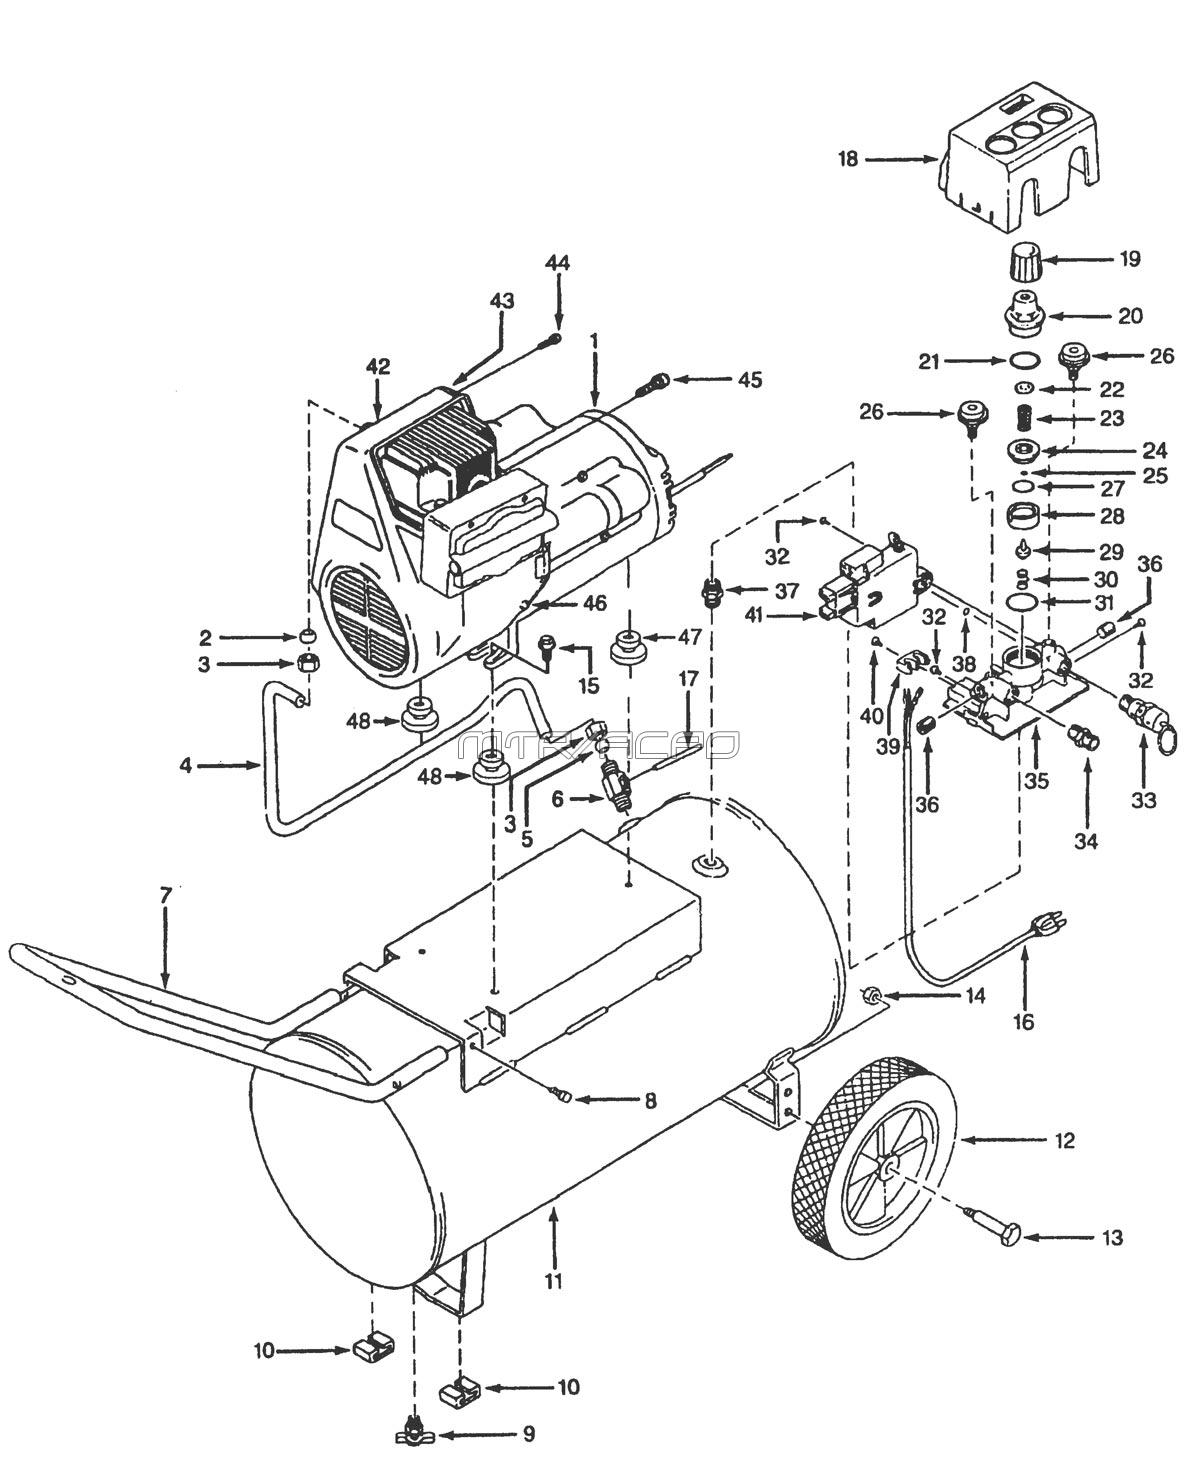 WL600701_WL600601_WL600801_parts campbell hausfeld parts wl600601, wl600701, wl600801, wl601101 air campbell hausfeld air compressor wiring diagram at soozxer.org